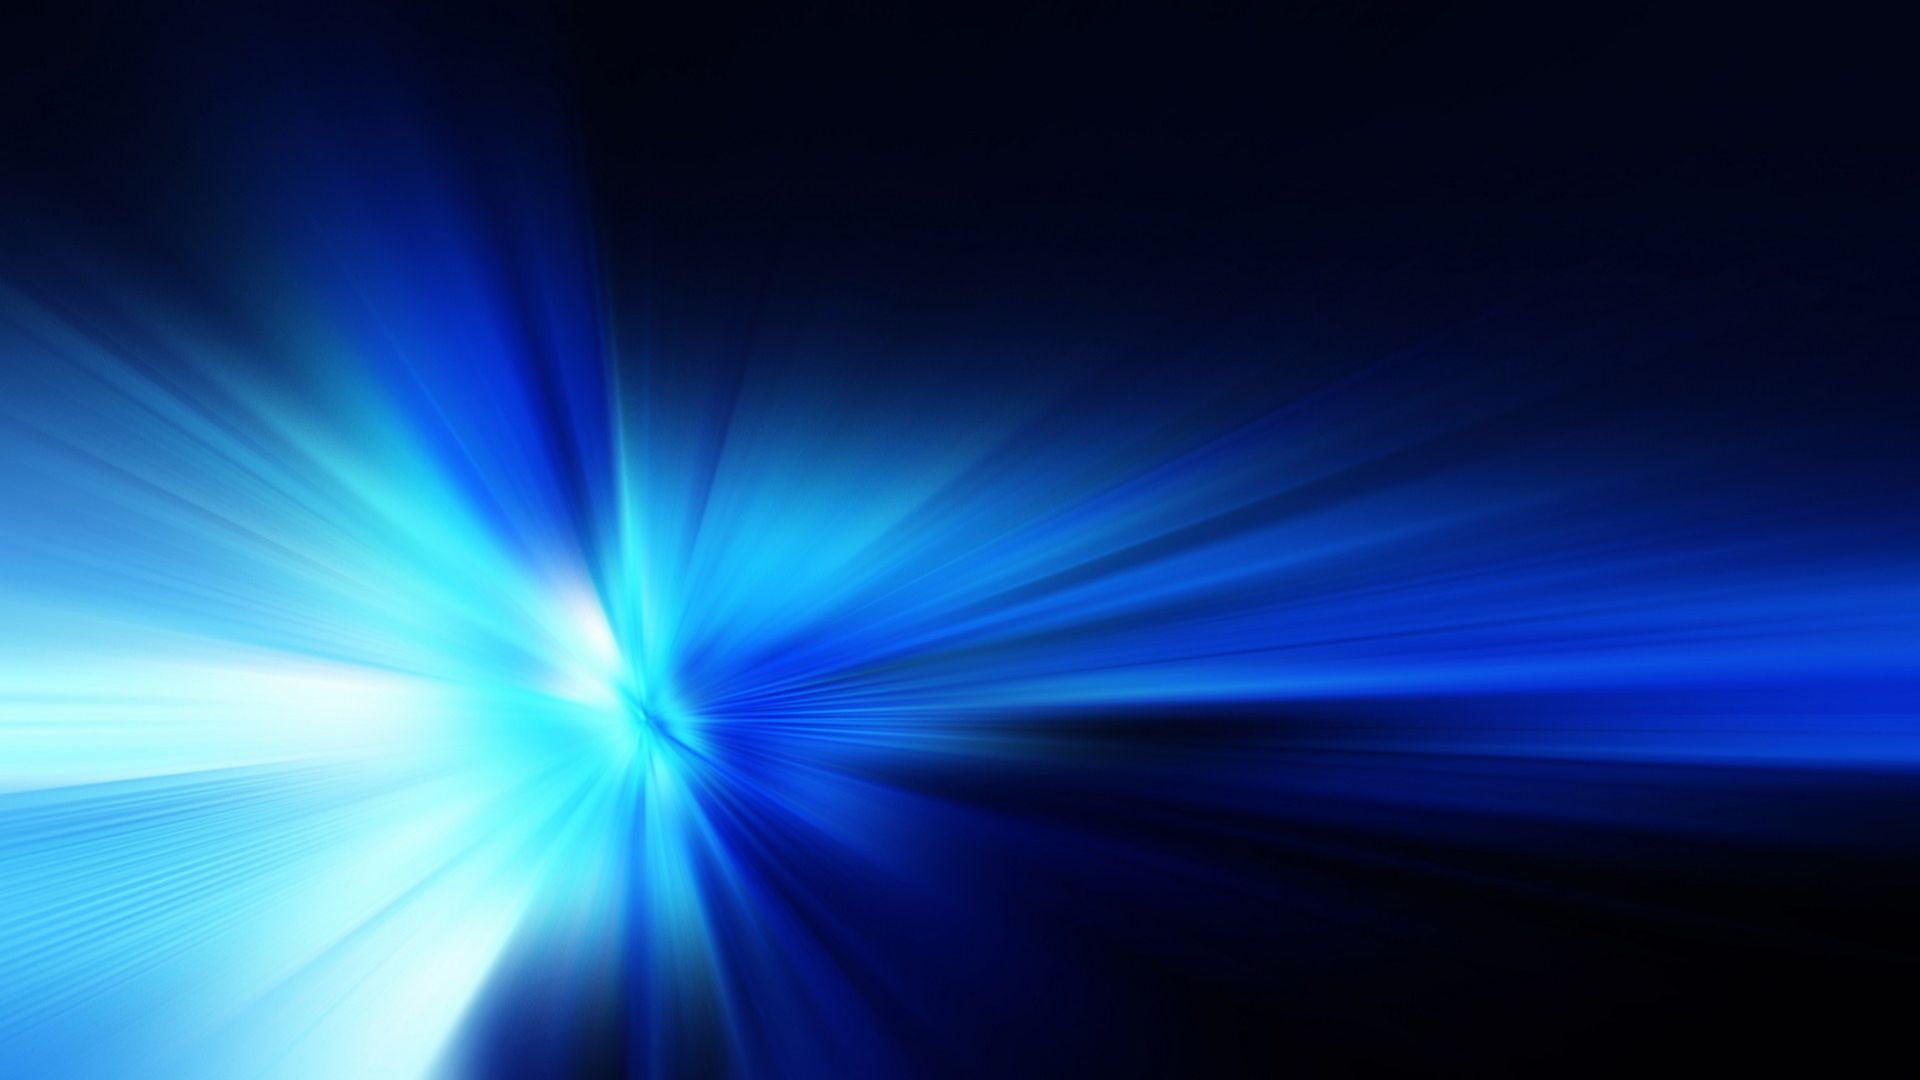 blue abstract hd 27571